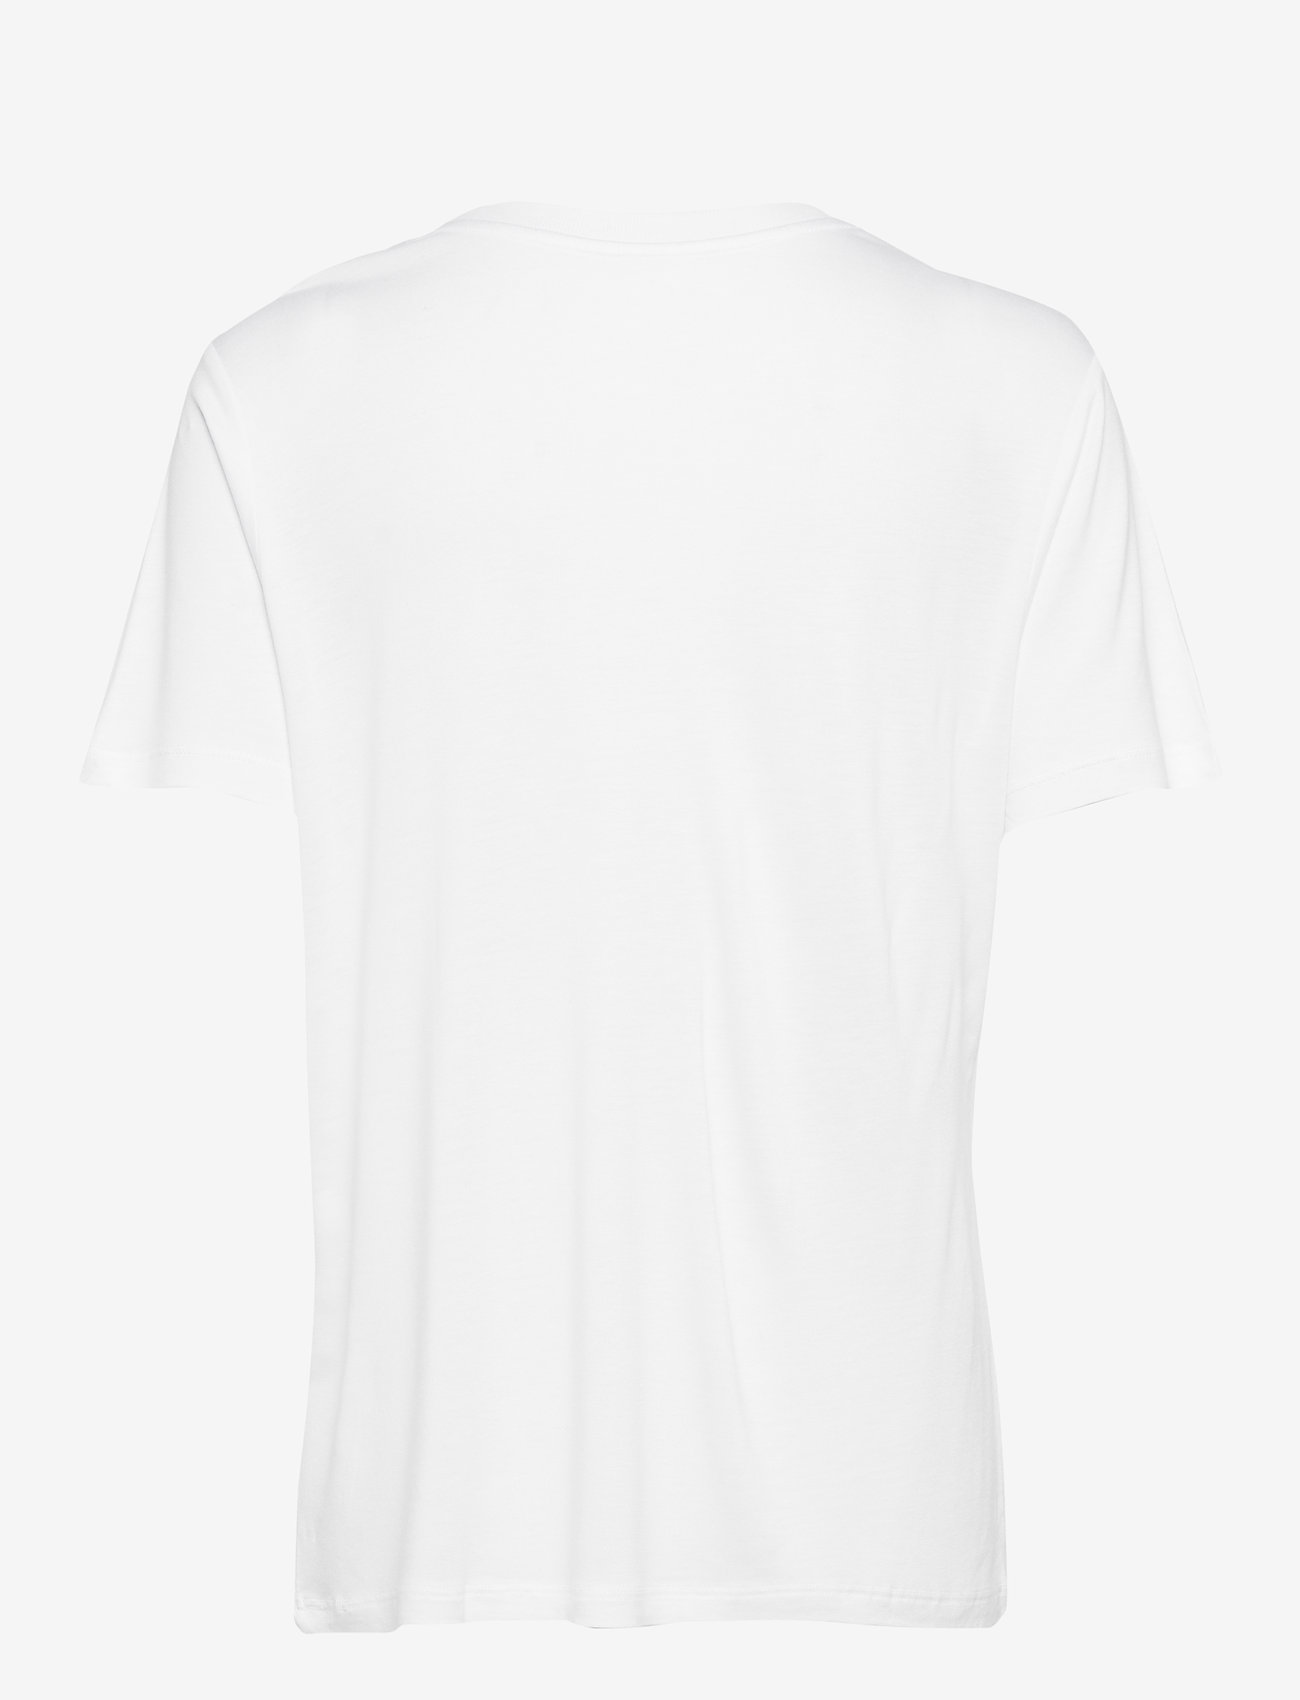 Relaxed Fit Tee (Bright White) - Lee Jeans N9xHx3